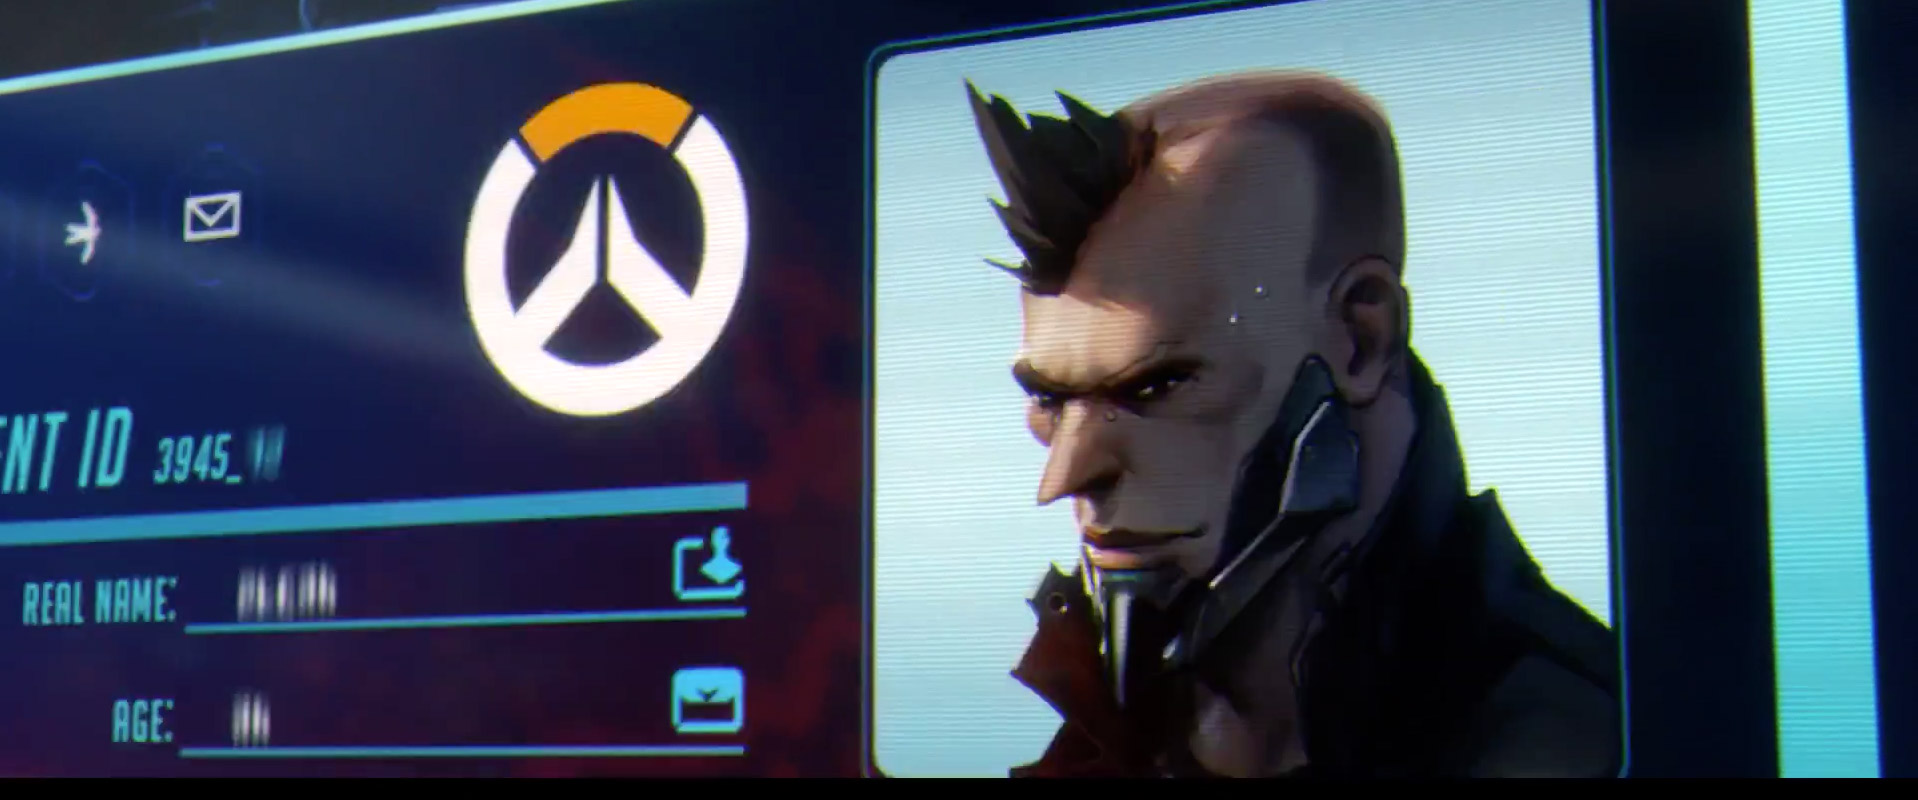 how to change overwatch name